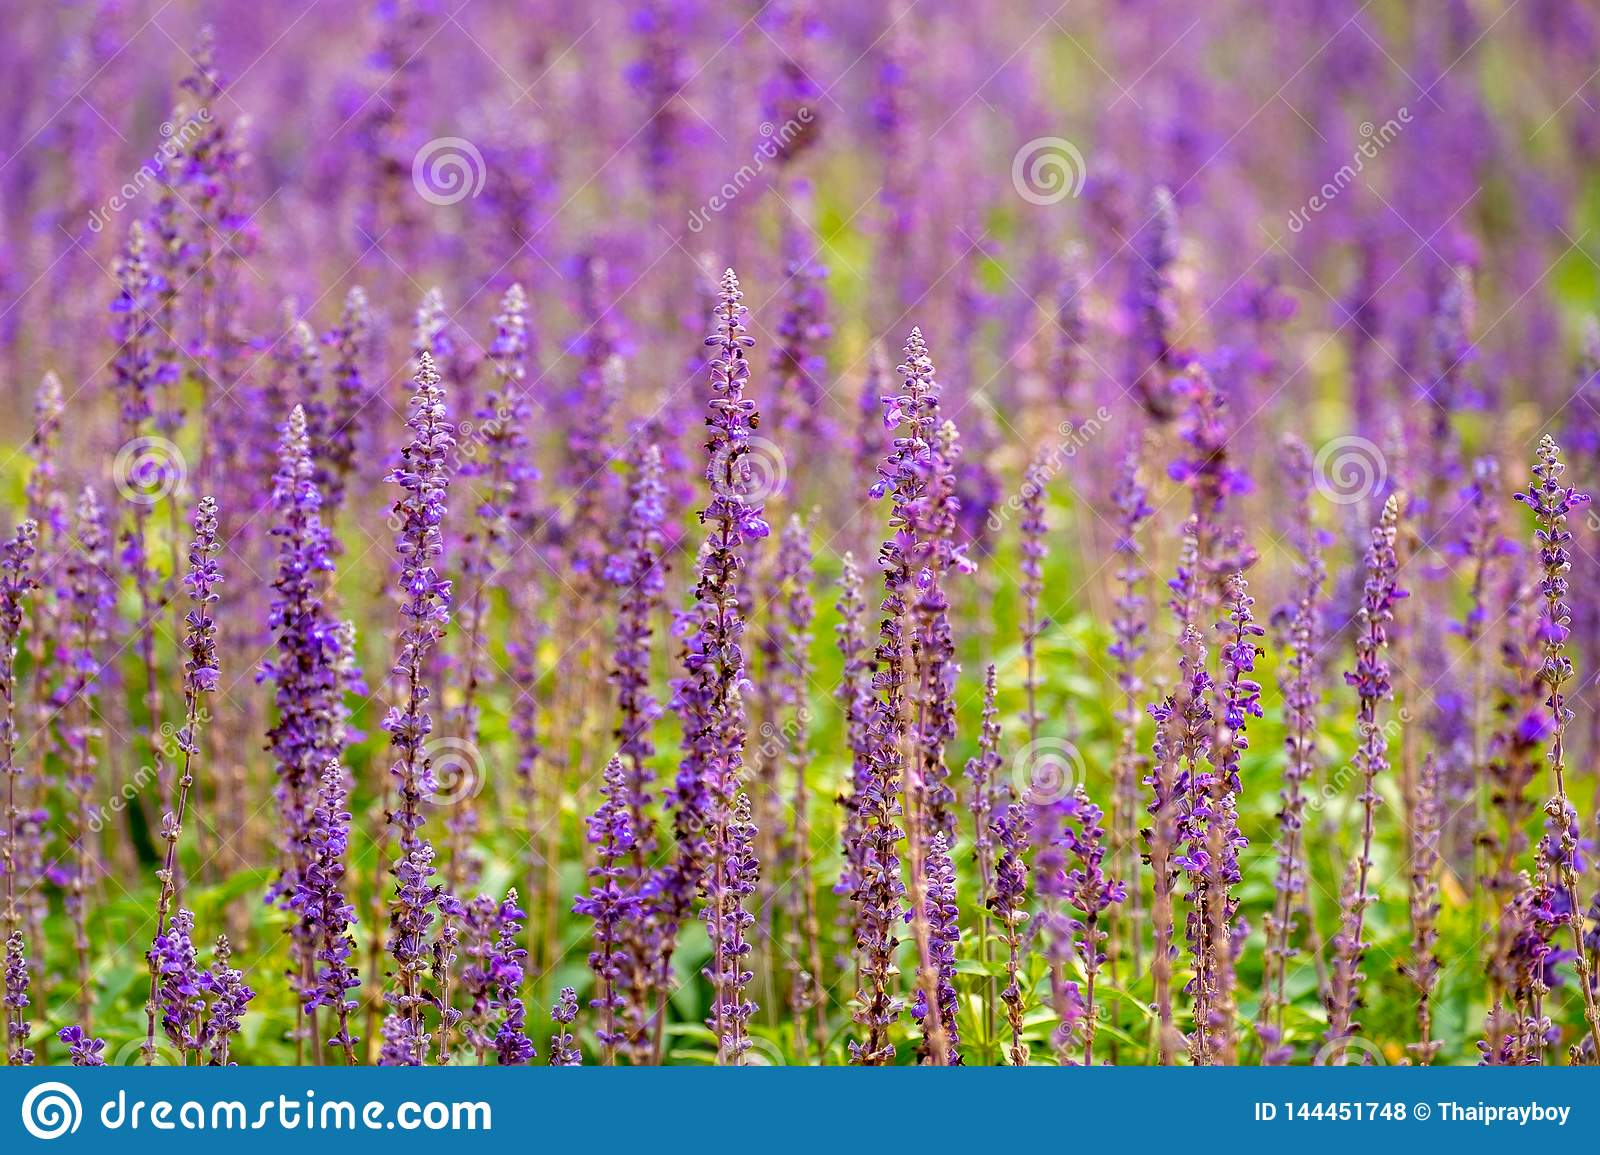 Beautiful Lavender Flower in the Field. Natural Violet Color Flowerin the Countryside